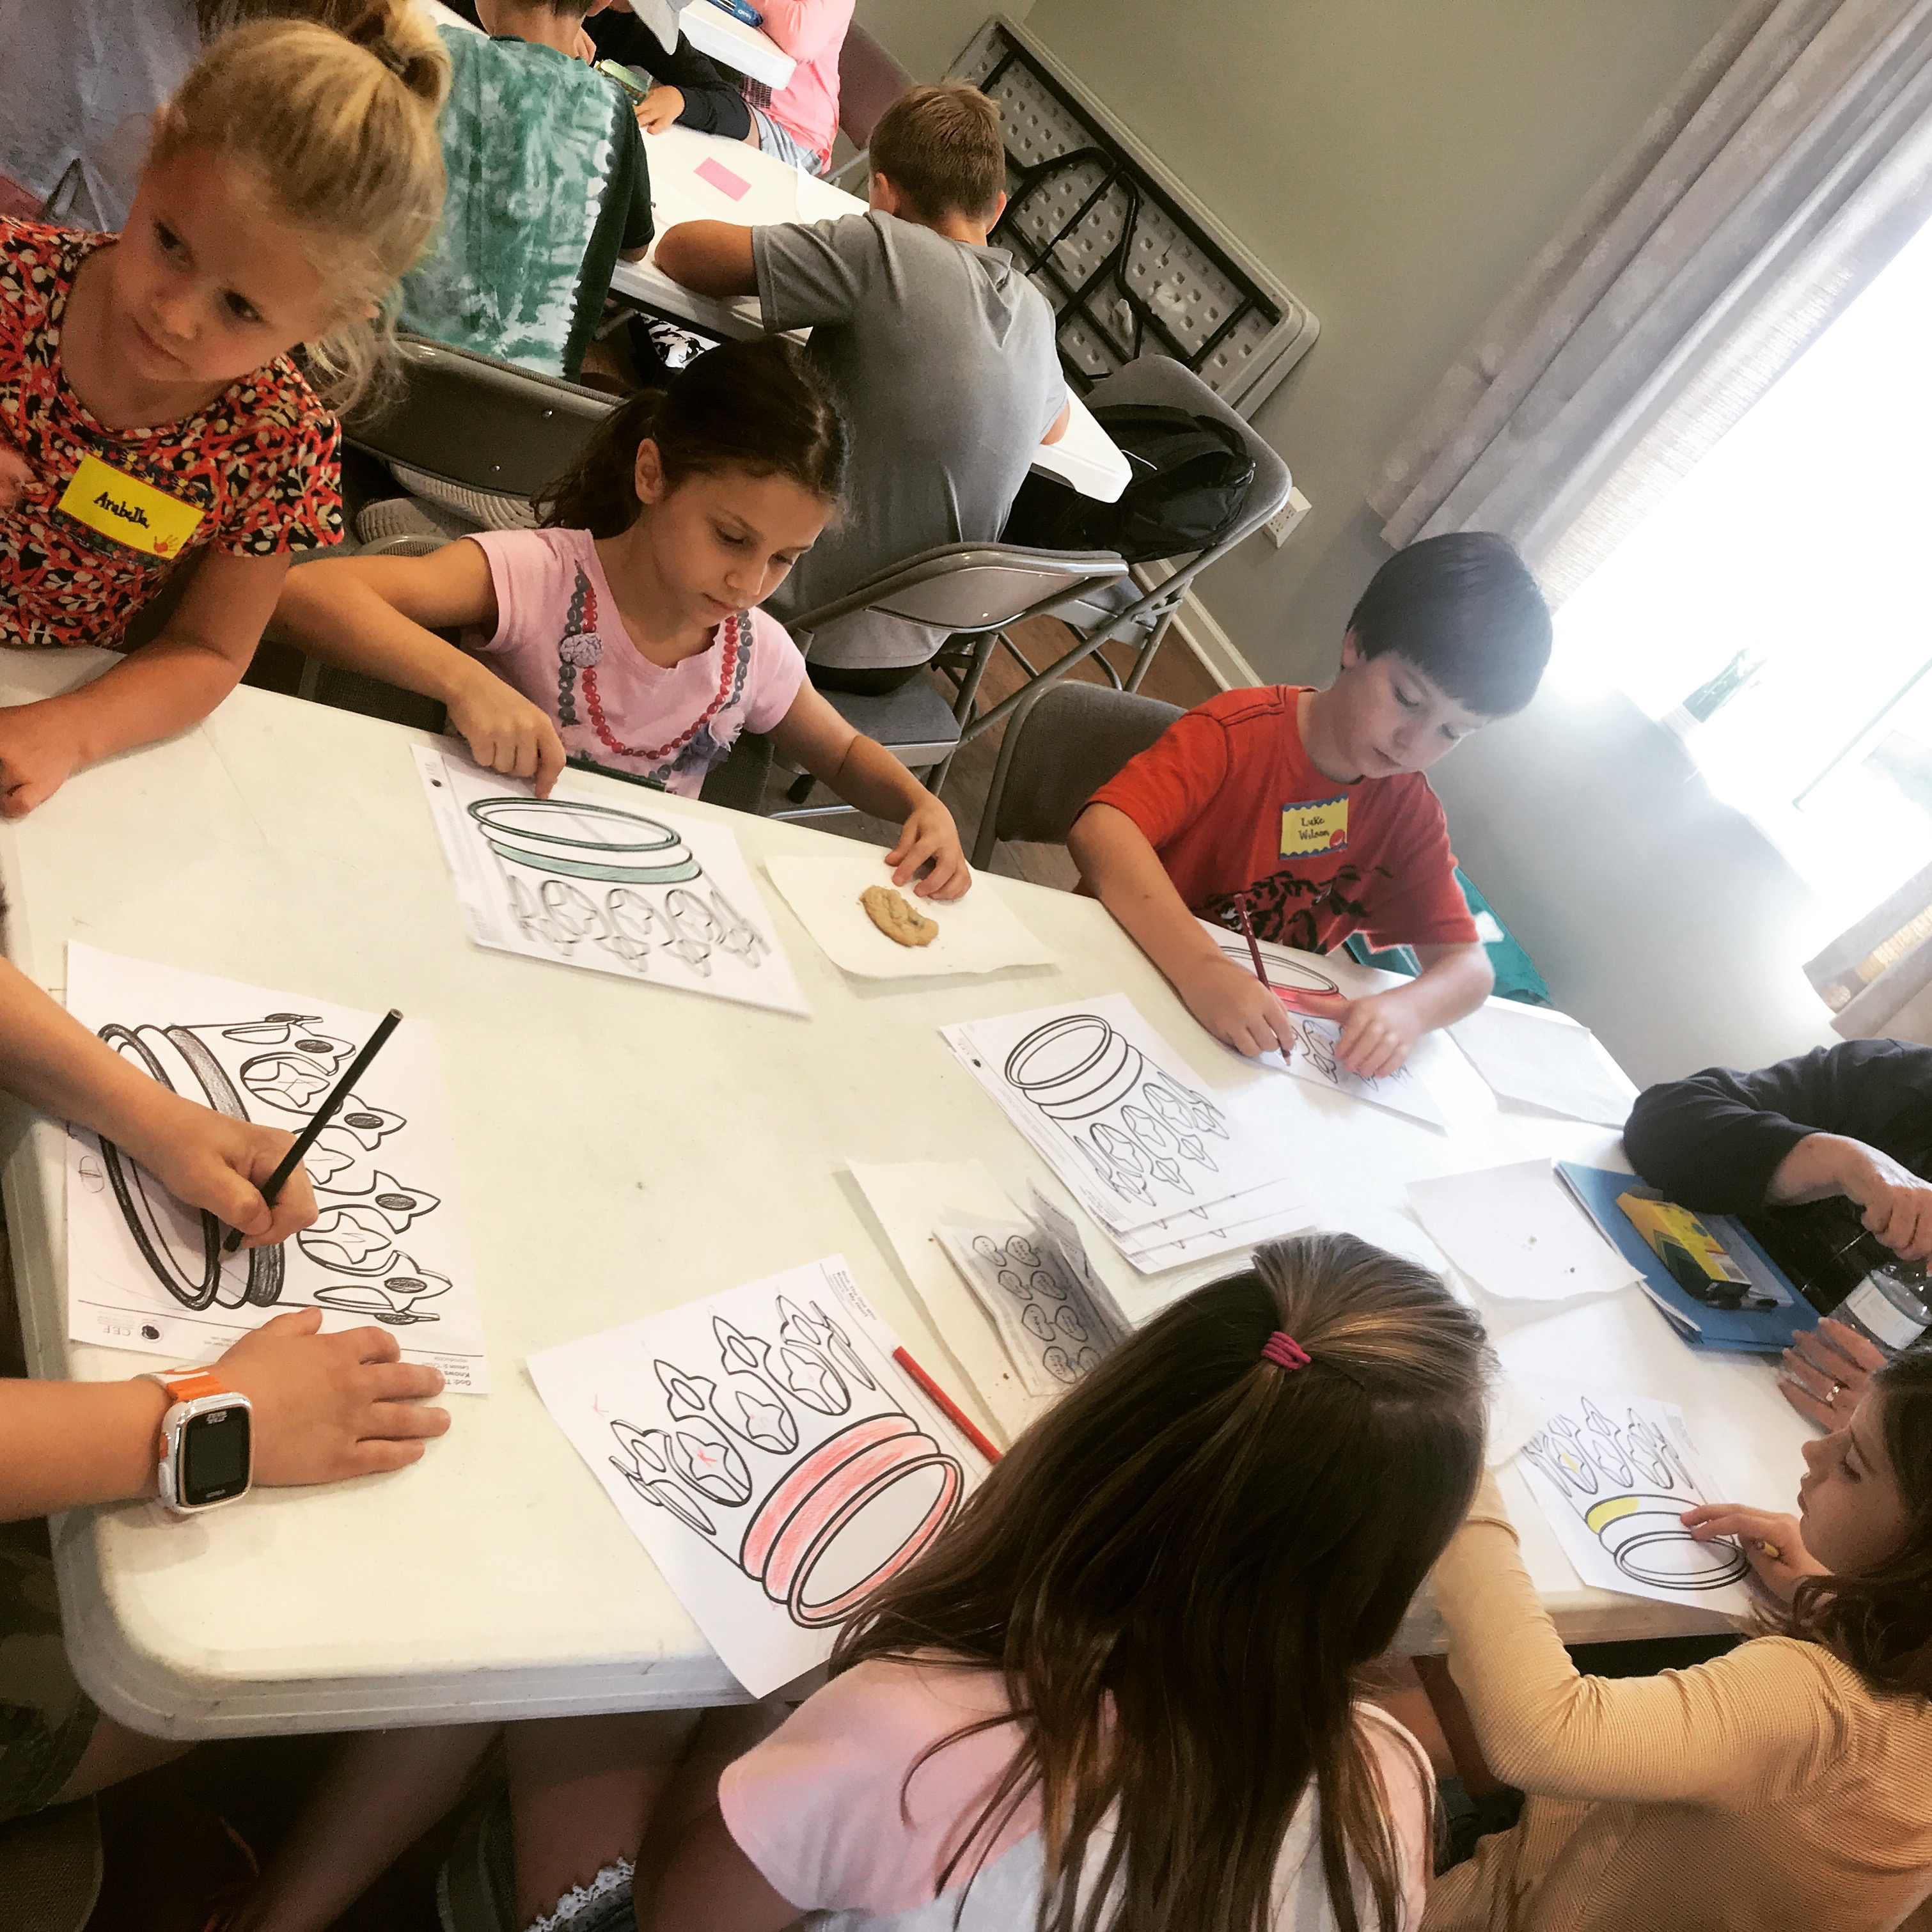 Bible students work on a worksheet during discussion time at Learn Together Lowcountry homeschool co-op in Bluffton SC